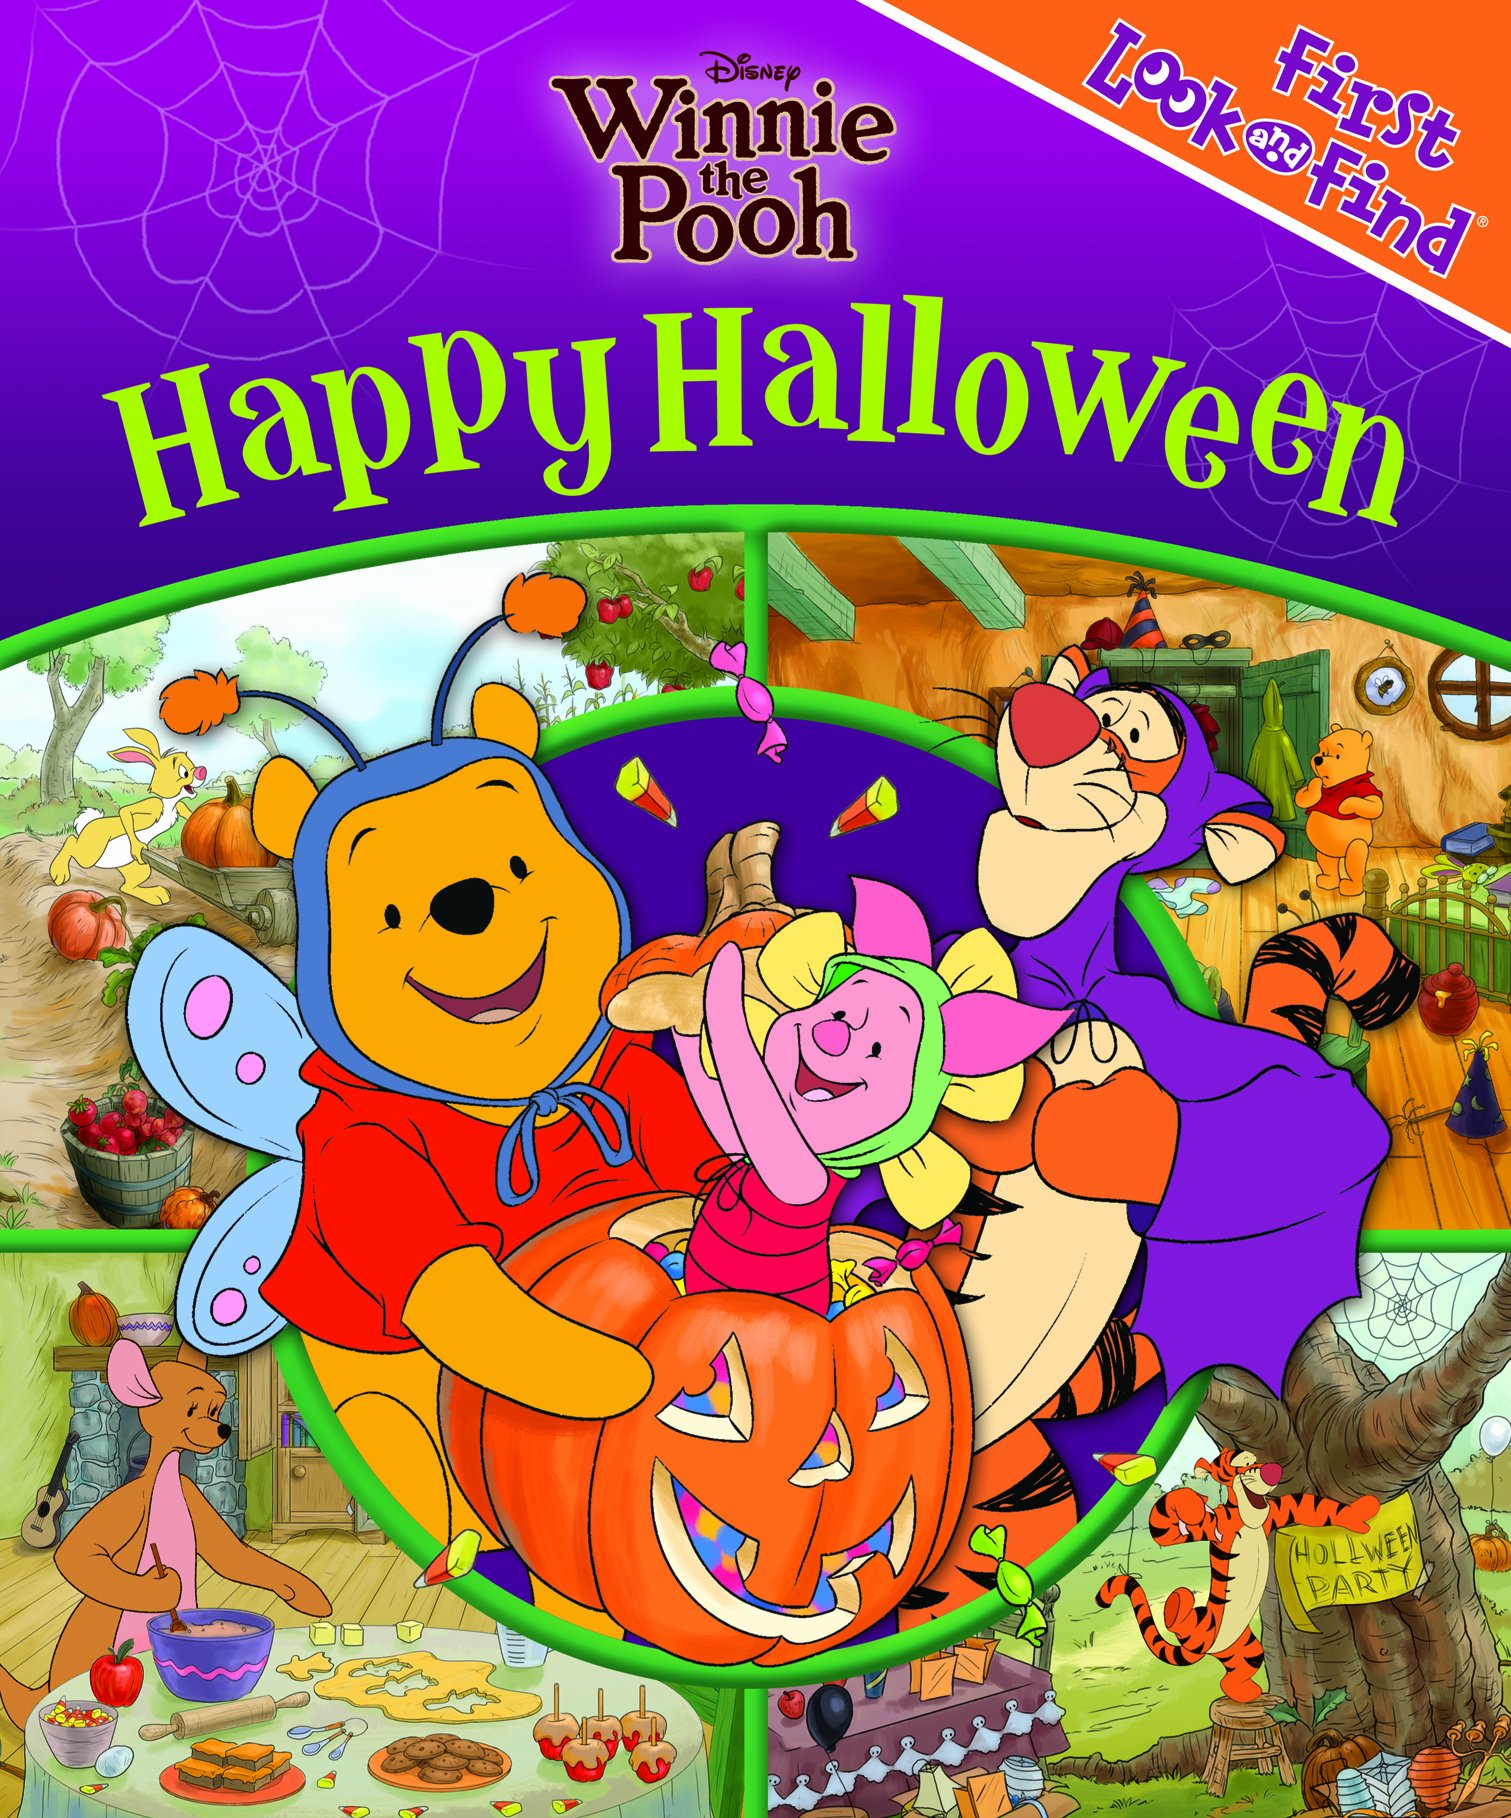 Disney Winnie the Pooh Happy Halloween First Look and Find: